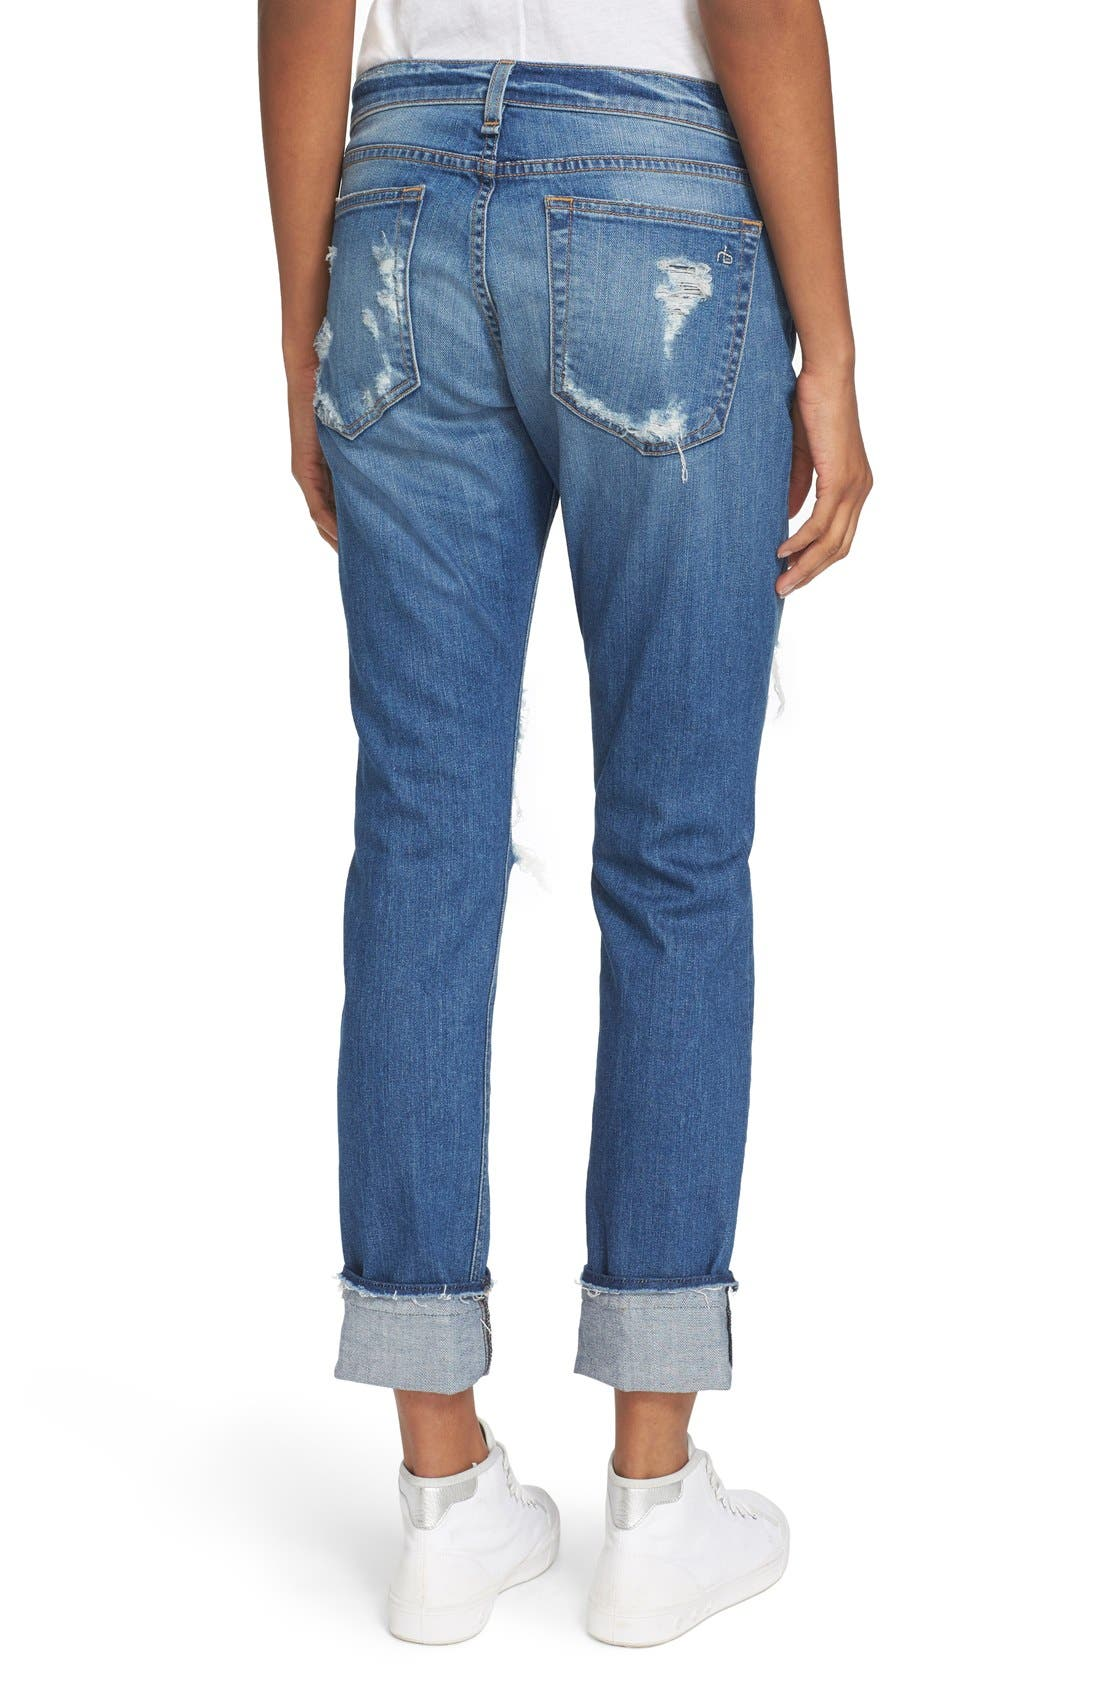 'The Dre' Slim Fit Boyfriend Jeans,                             Alternate thumbnail 5, color,                             429